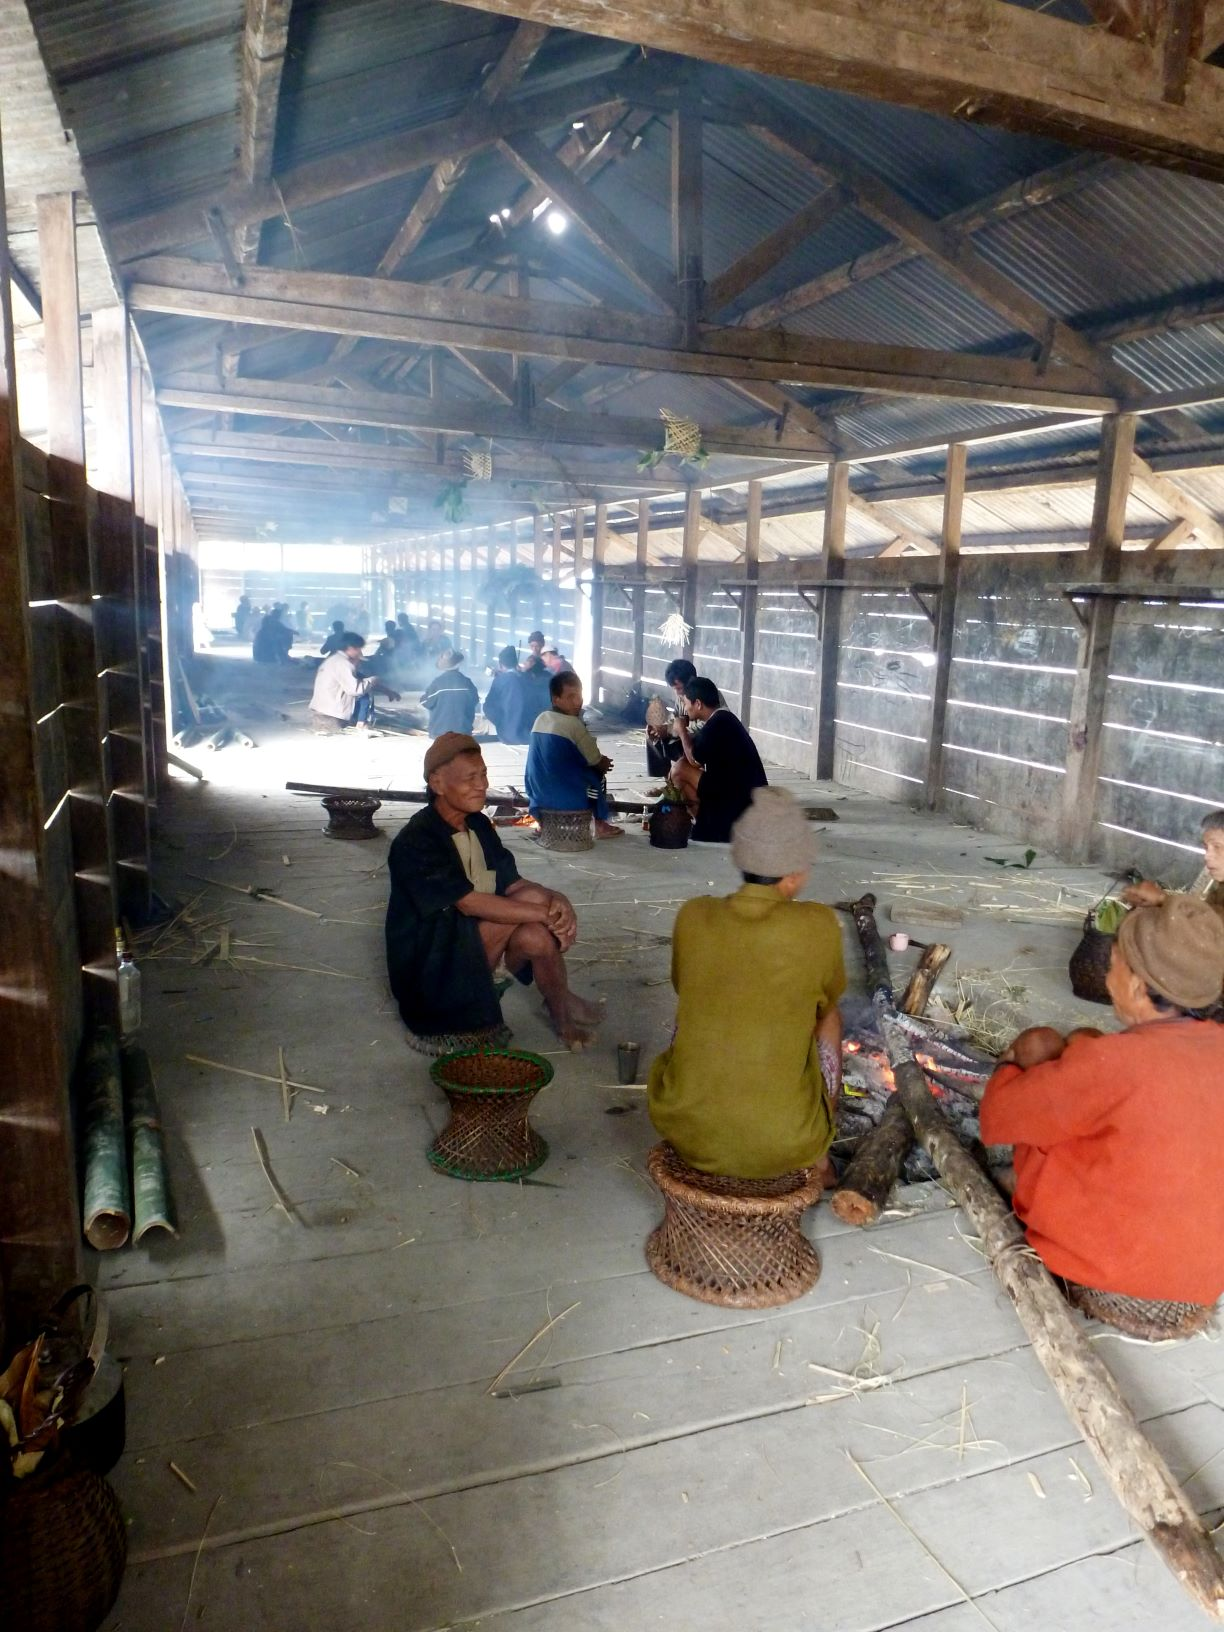 The moshup or the community hall is where villagers assemble during festivals and proceedings of the kebang, a traditional village council. Women are not allowed for some occasions, which are exclusive for men/elders.